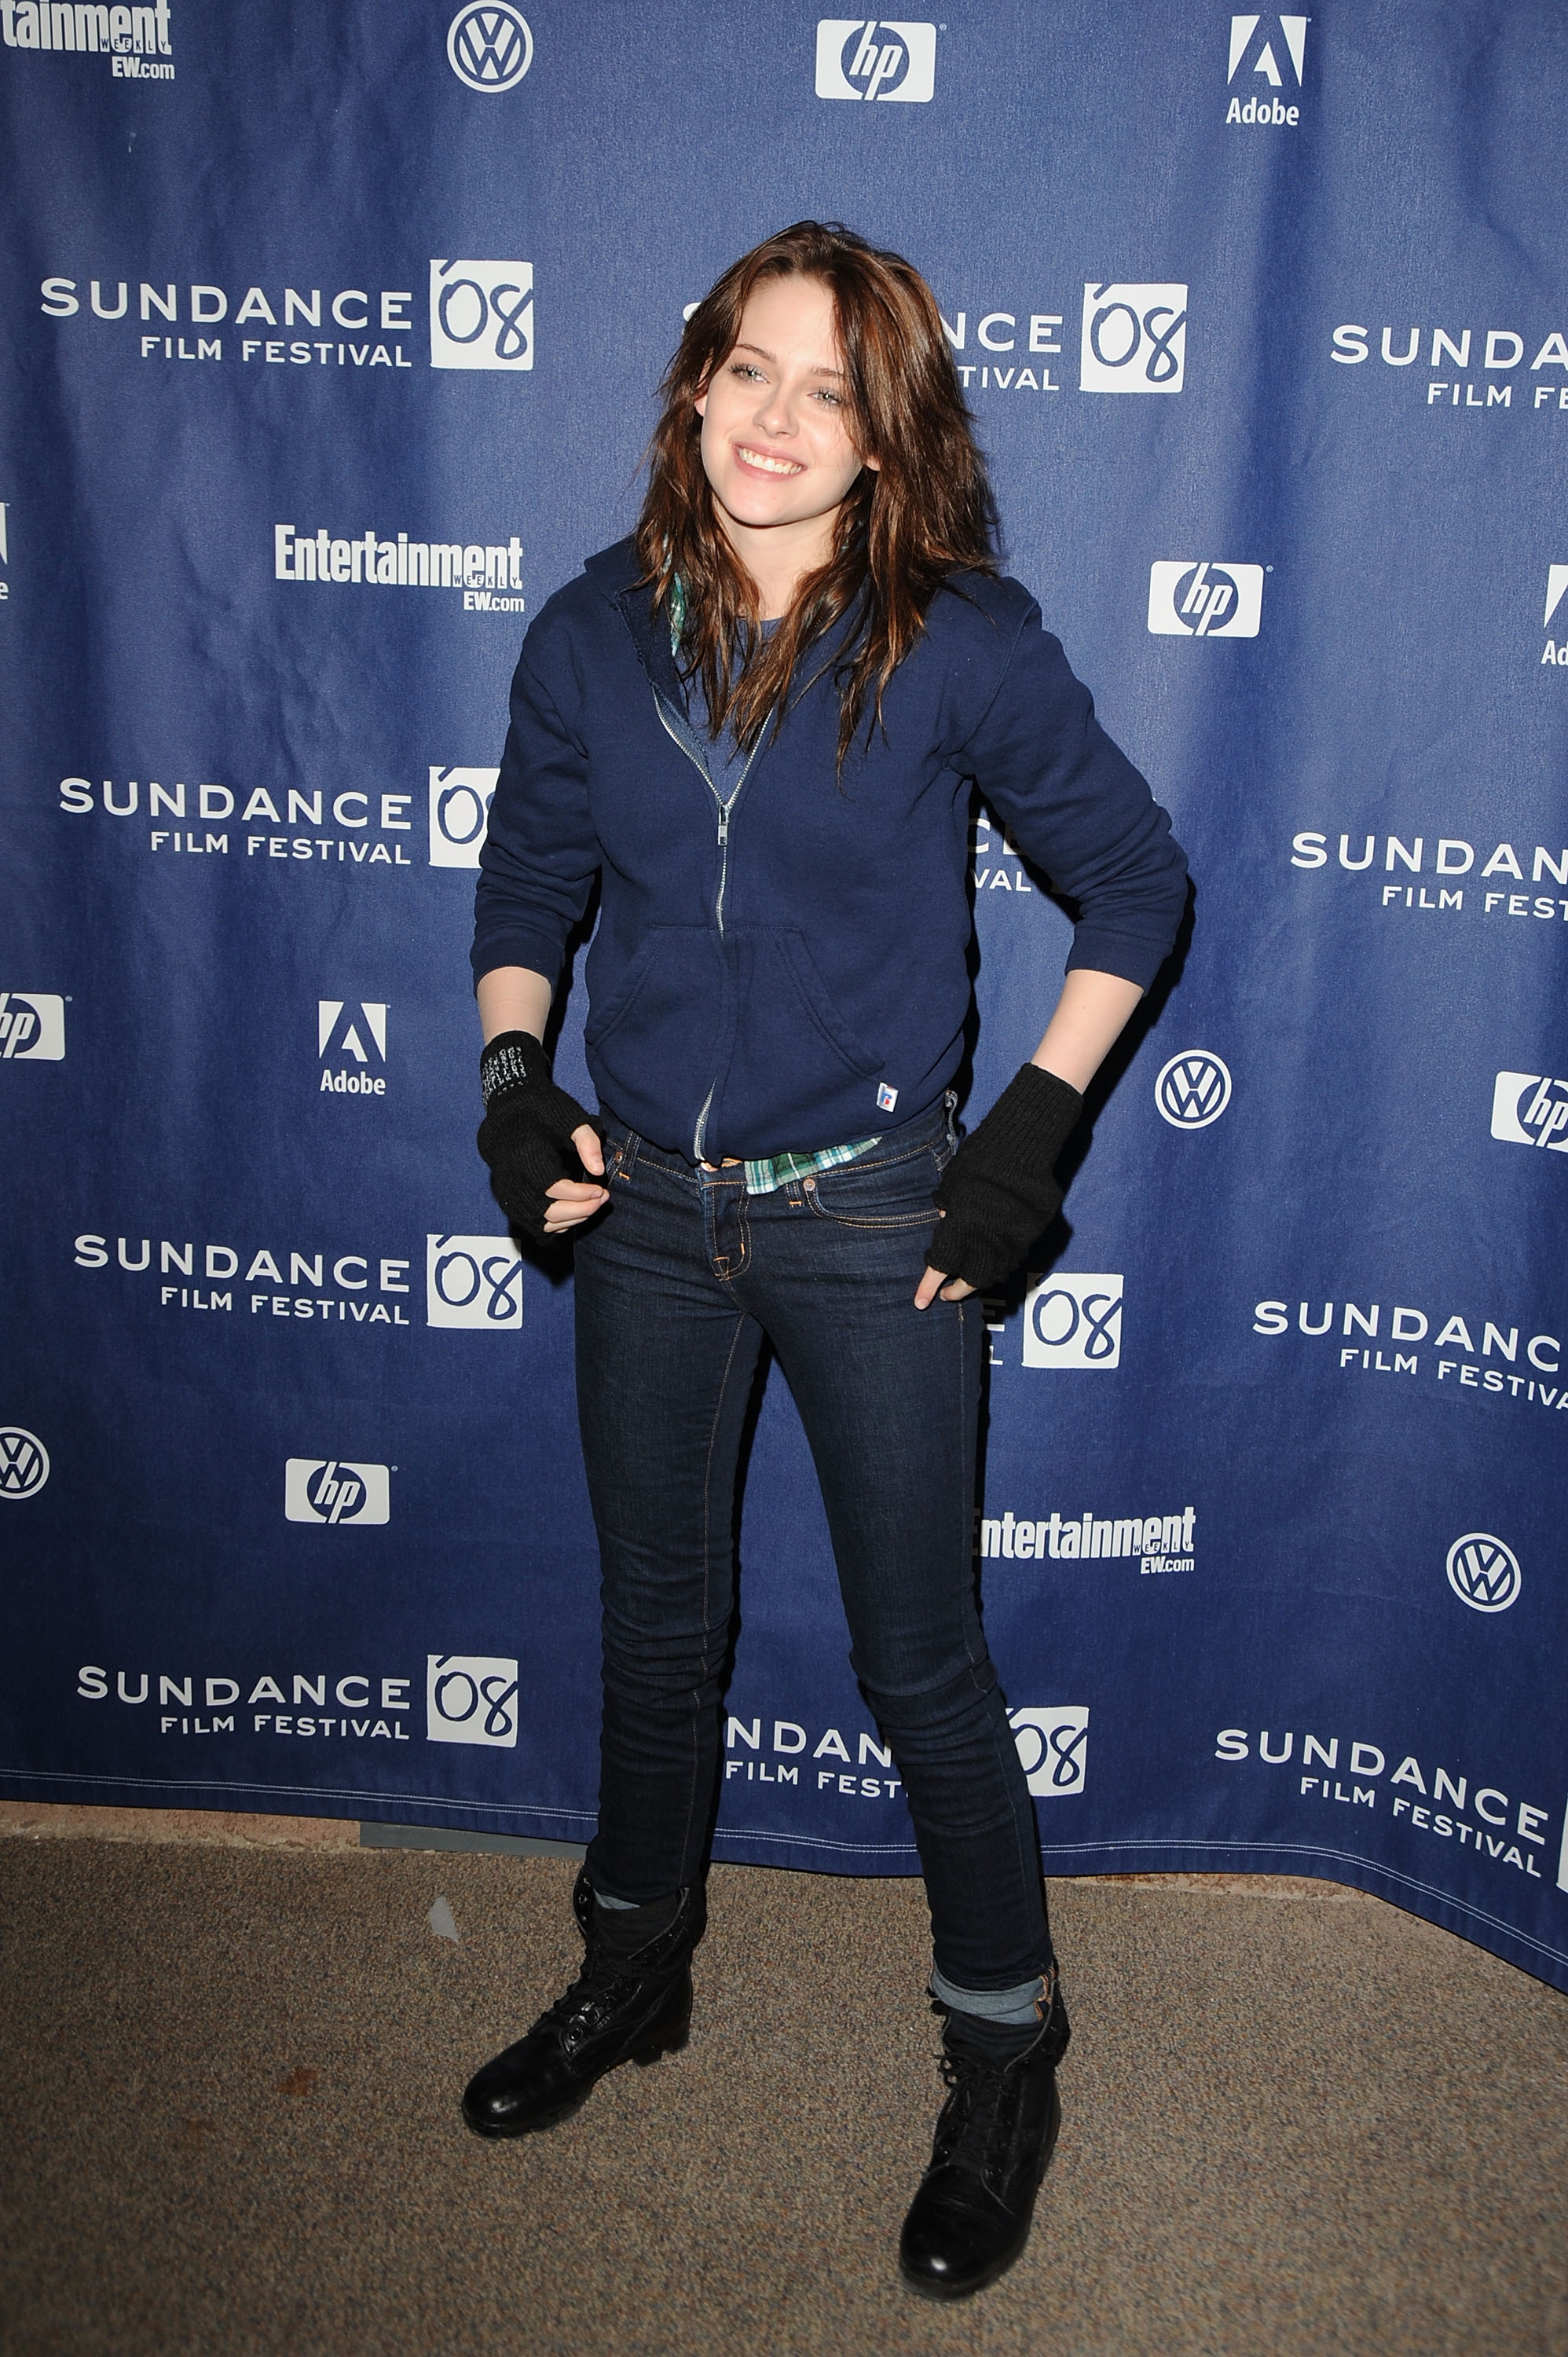 Kristen Stewart wore gloves to stay warm in Park City, UT, for the premiere of The Yellow Handkerchief during the Sundance Film Festival in January 2008.